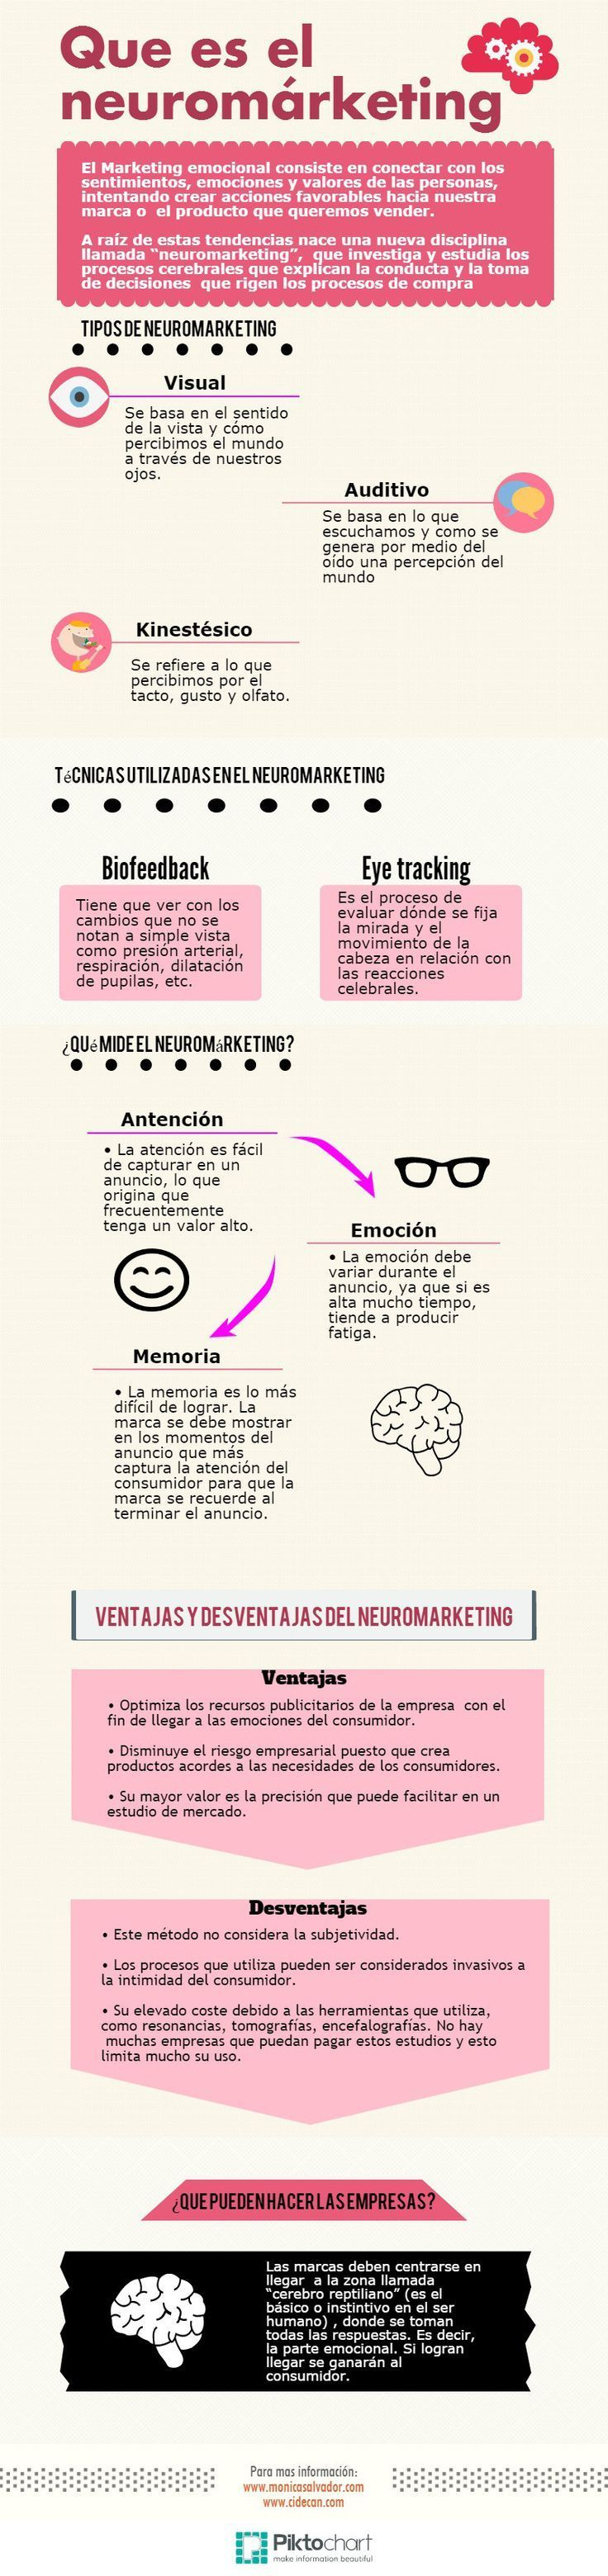 Cómo utilizar el #neuromarketing | www.neuromarketingytecnologia.com/blog